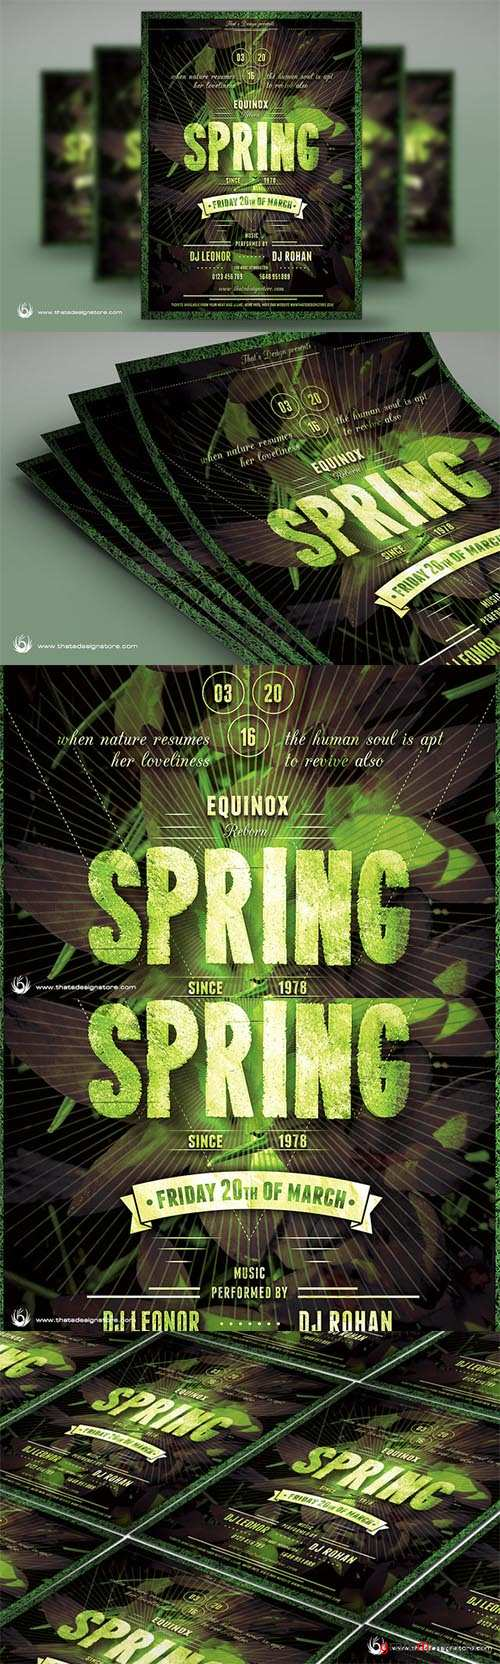 CM - Spring Equinox Flyer Template 216392